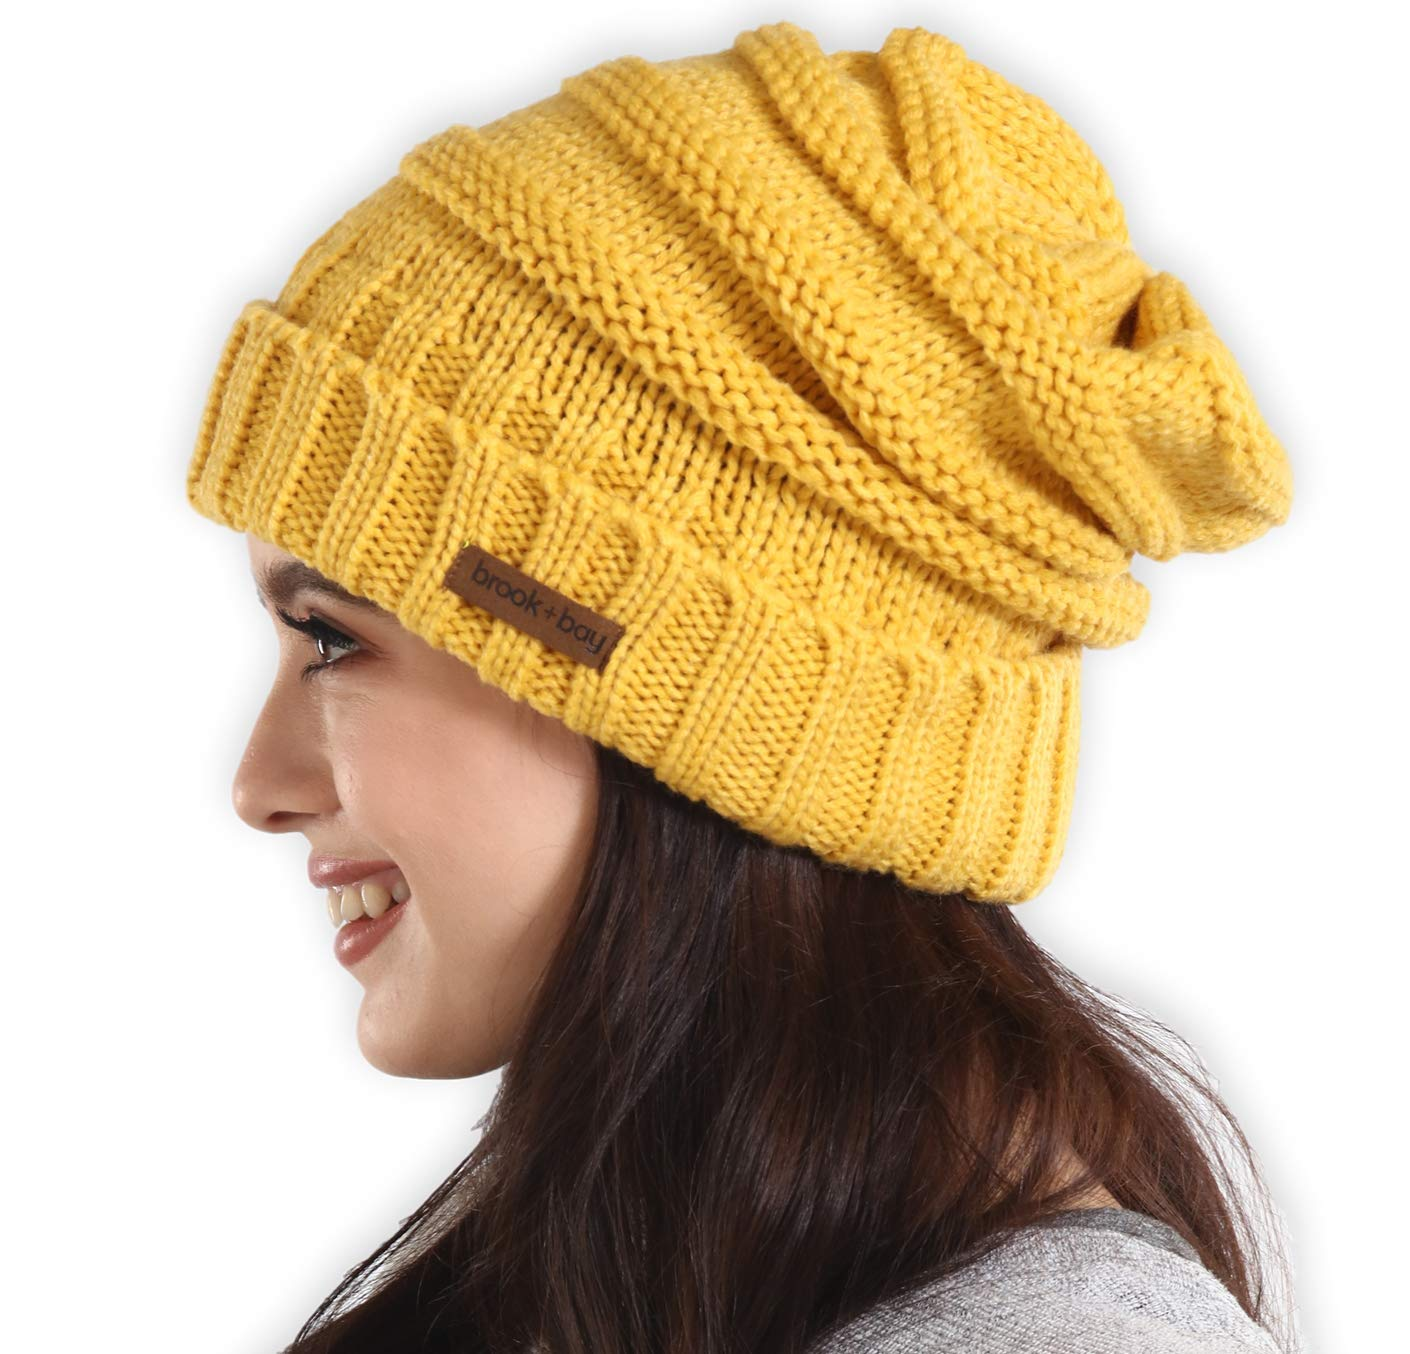 69232f57583b9 Brook + Bay Slouchy Cable Knit Cuff Beanie - Stay Warm   Stylish - Chunky